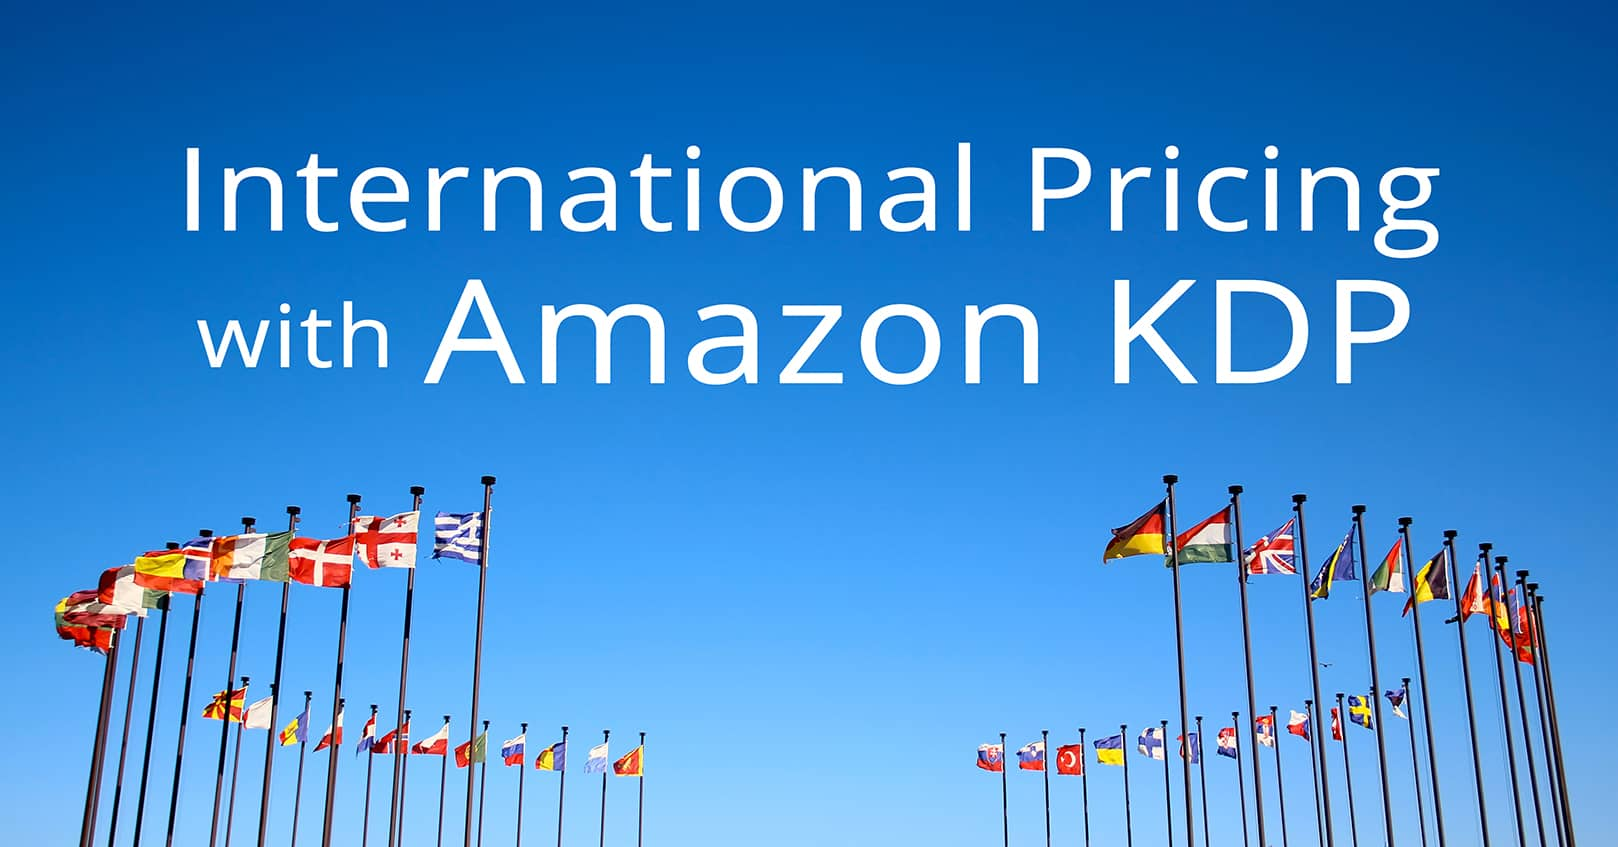 International Pricing on Amazon KDP